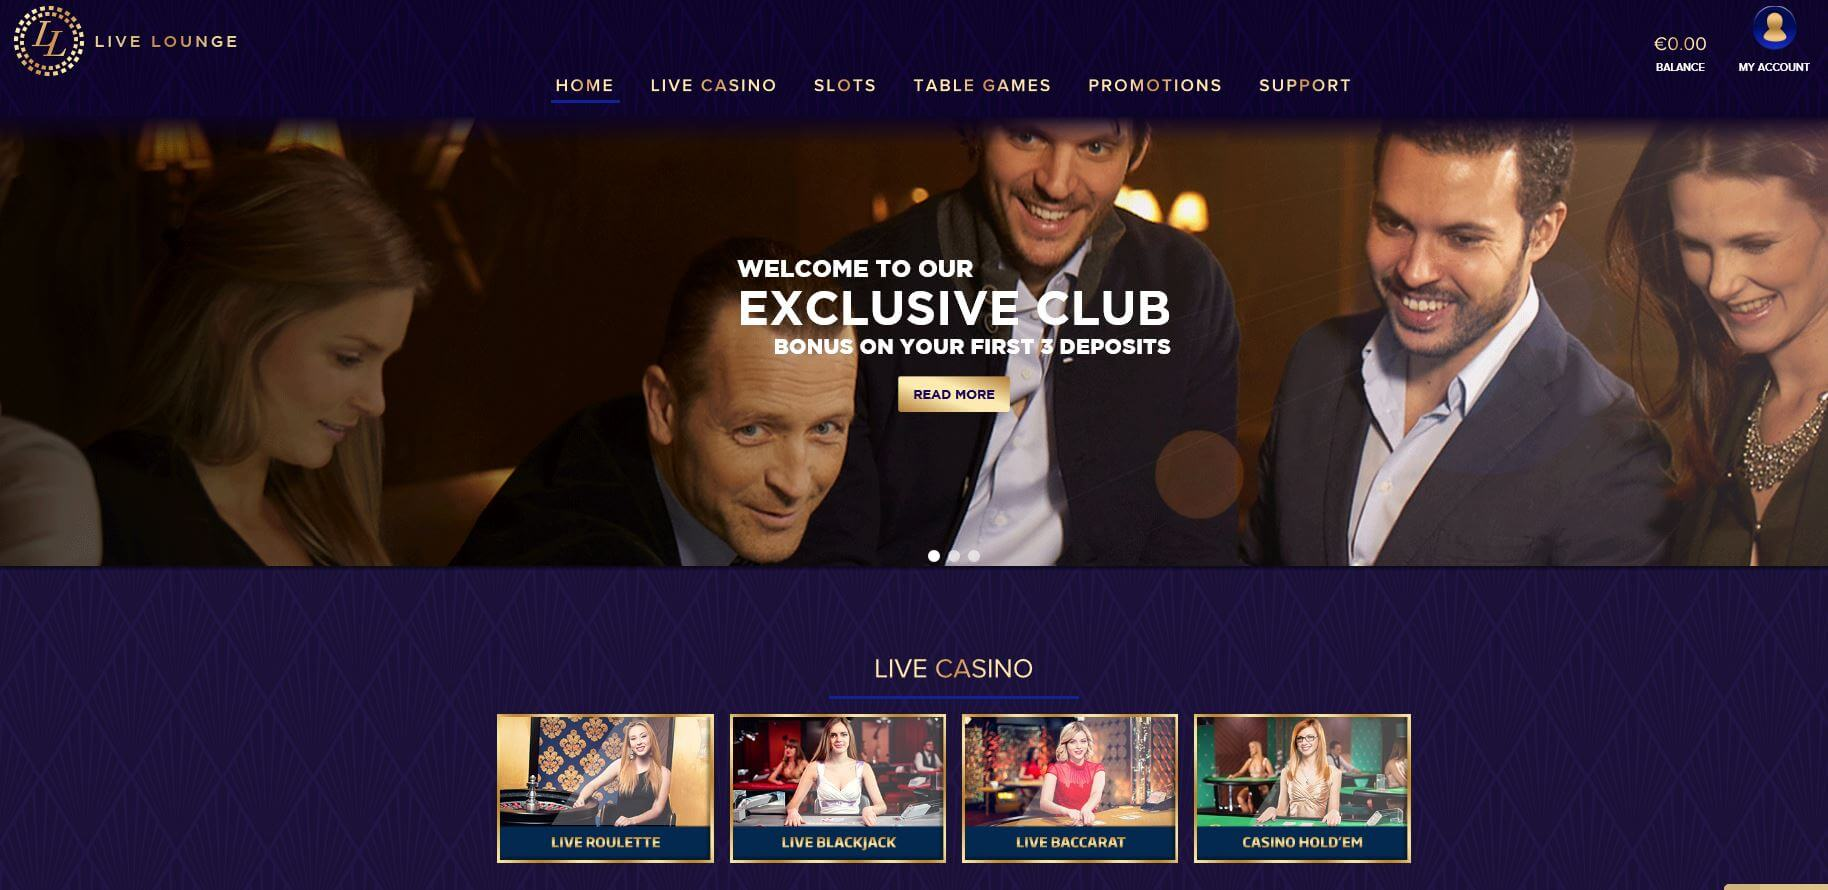 Live Lounge Casino Homepage